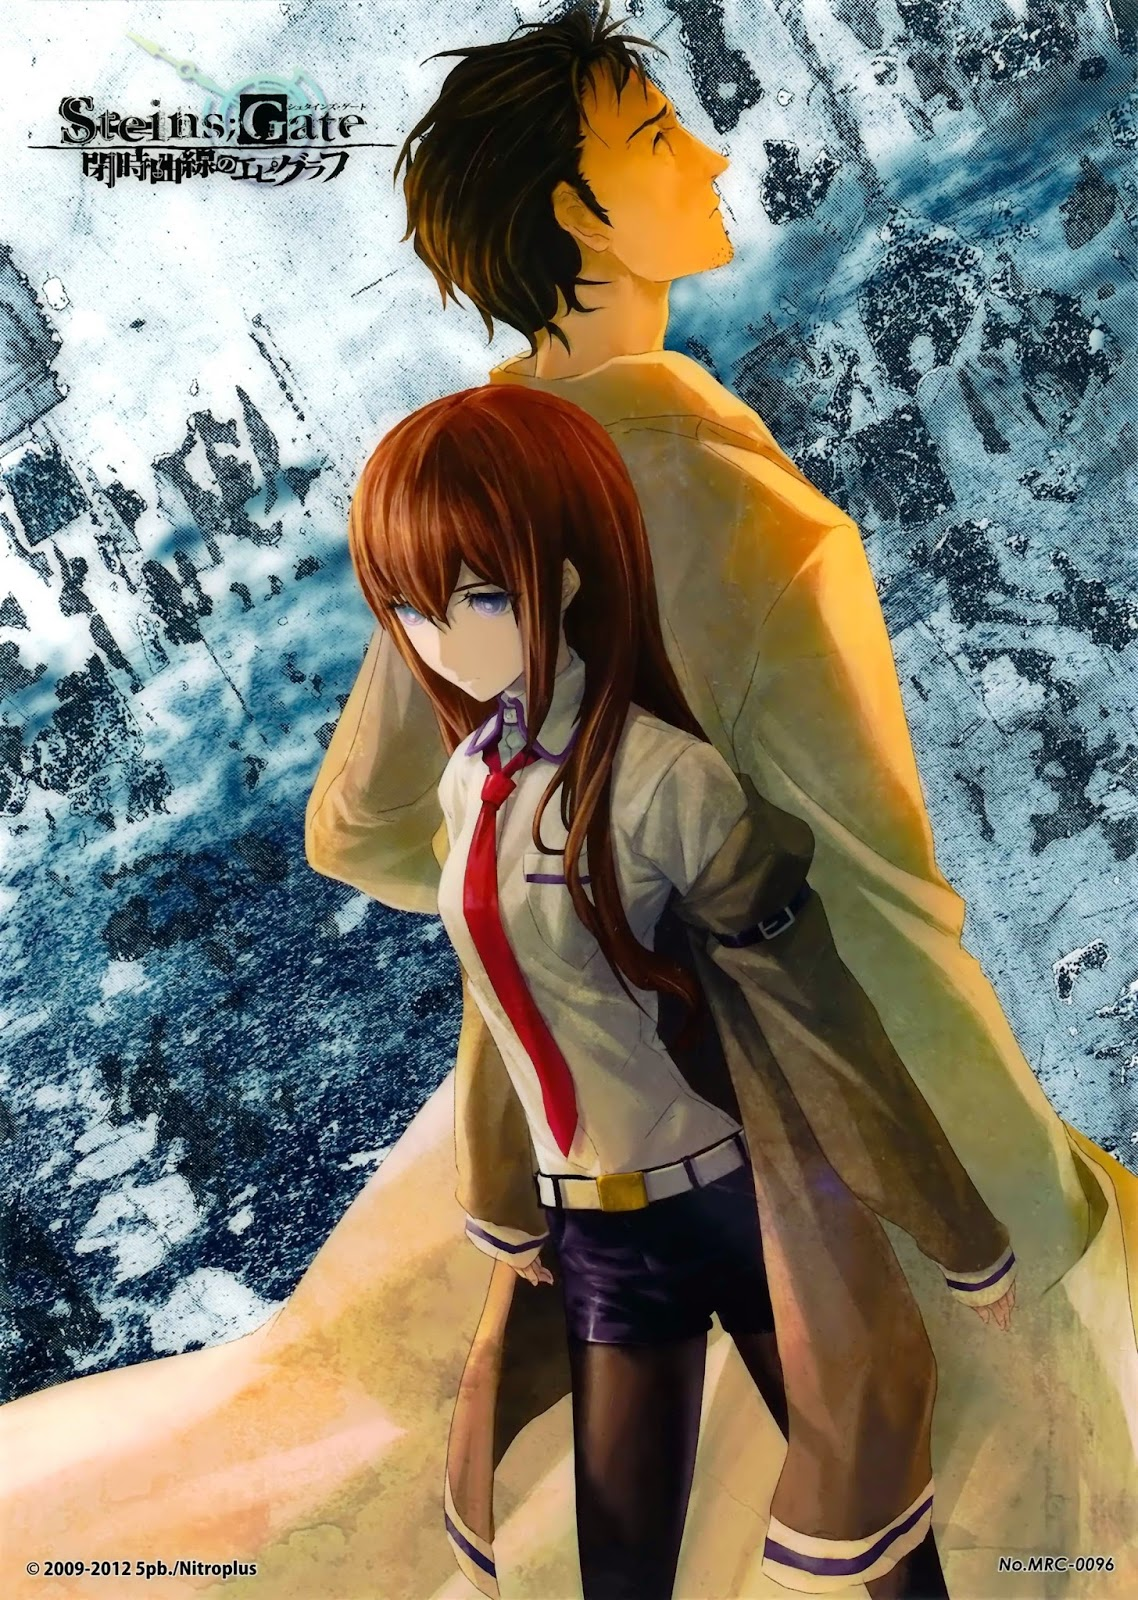 anime review steins gate hsmedianerd book anime and movie reviews